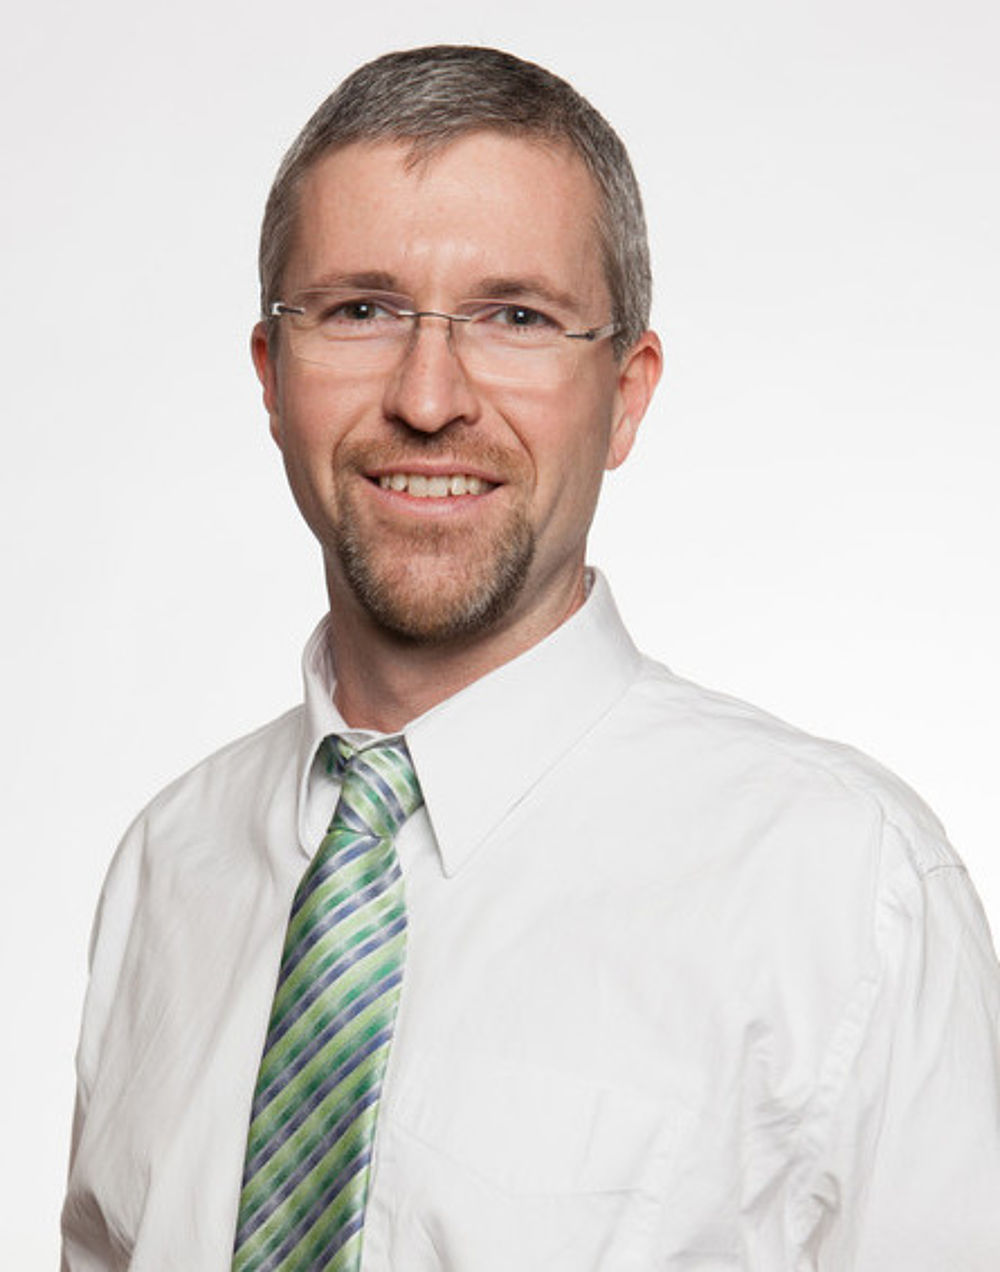 Professional portrait of David Lindstrom wearing a white shirt and striped green/blue tie.